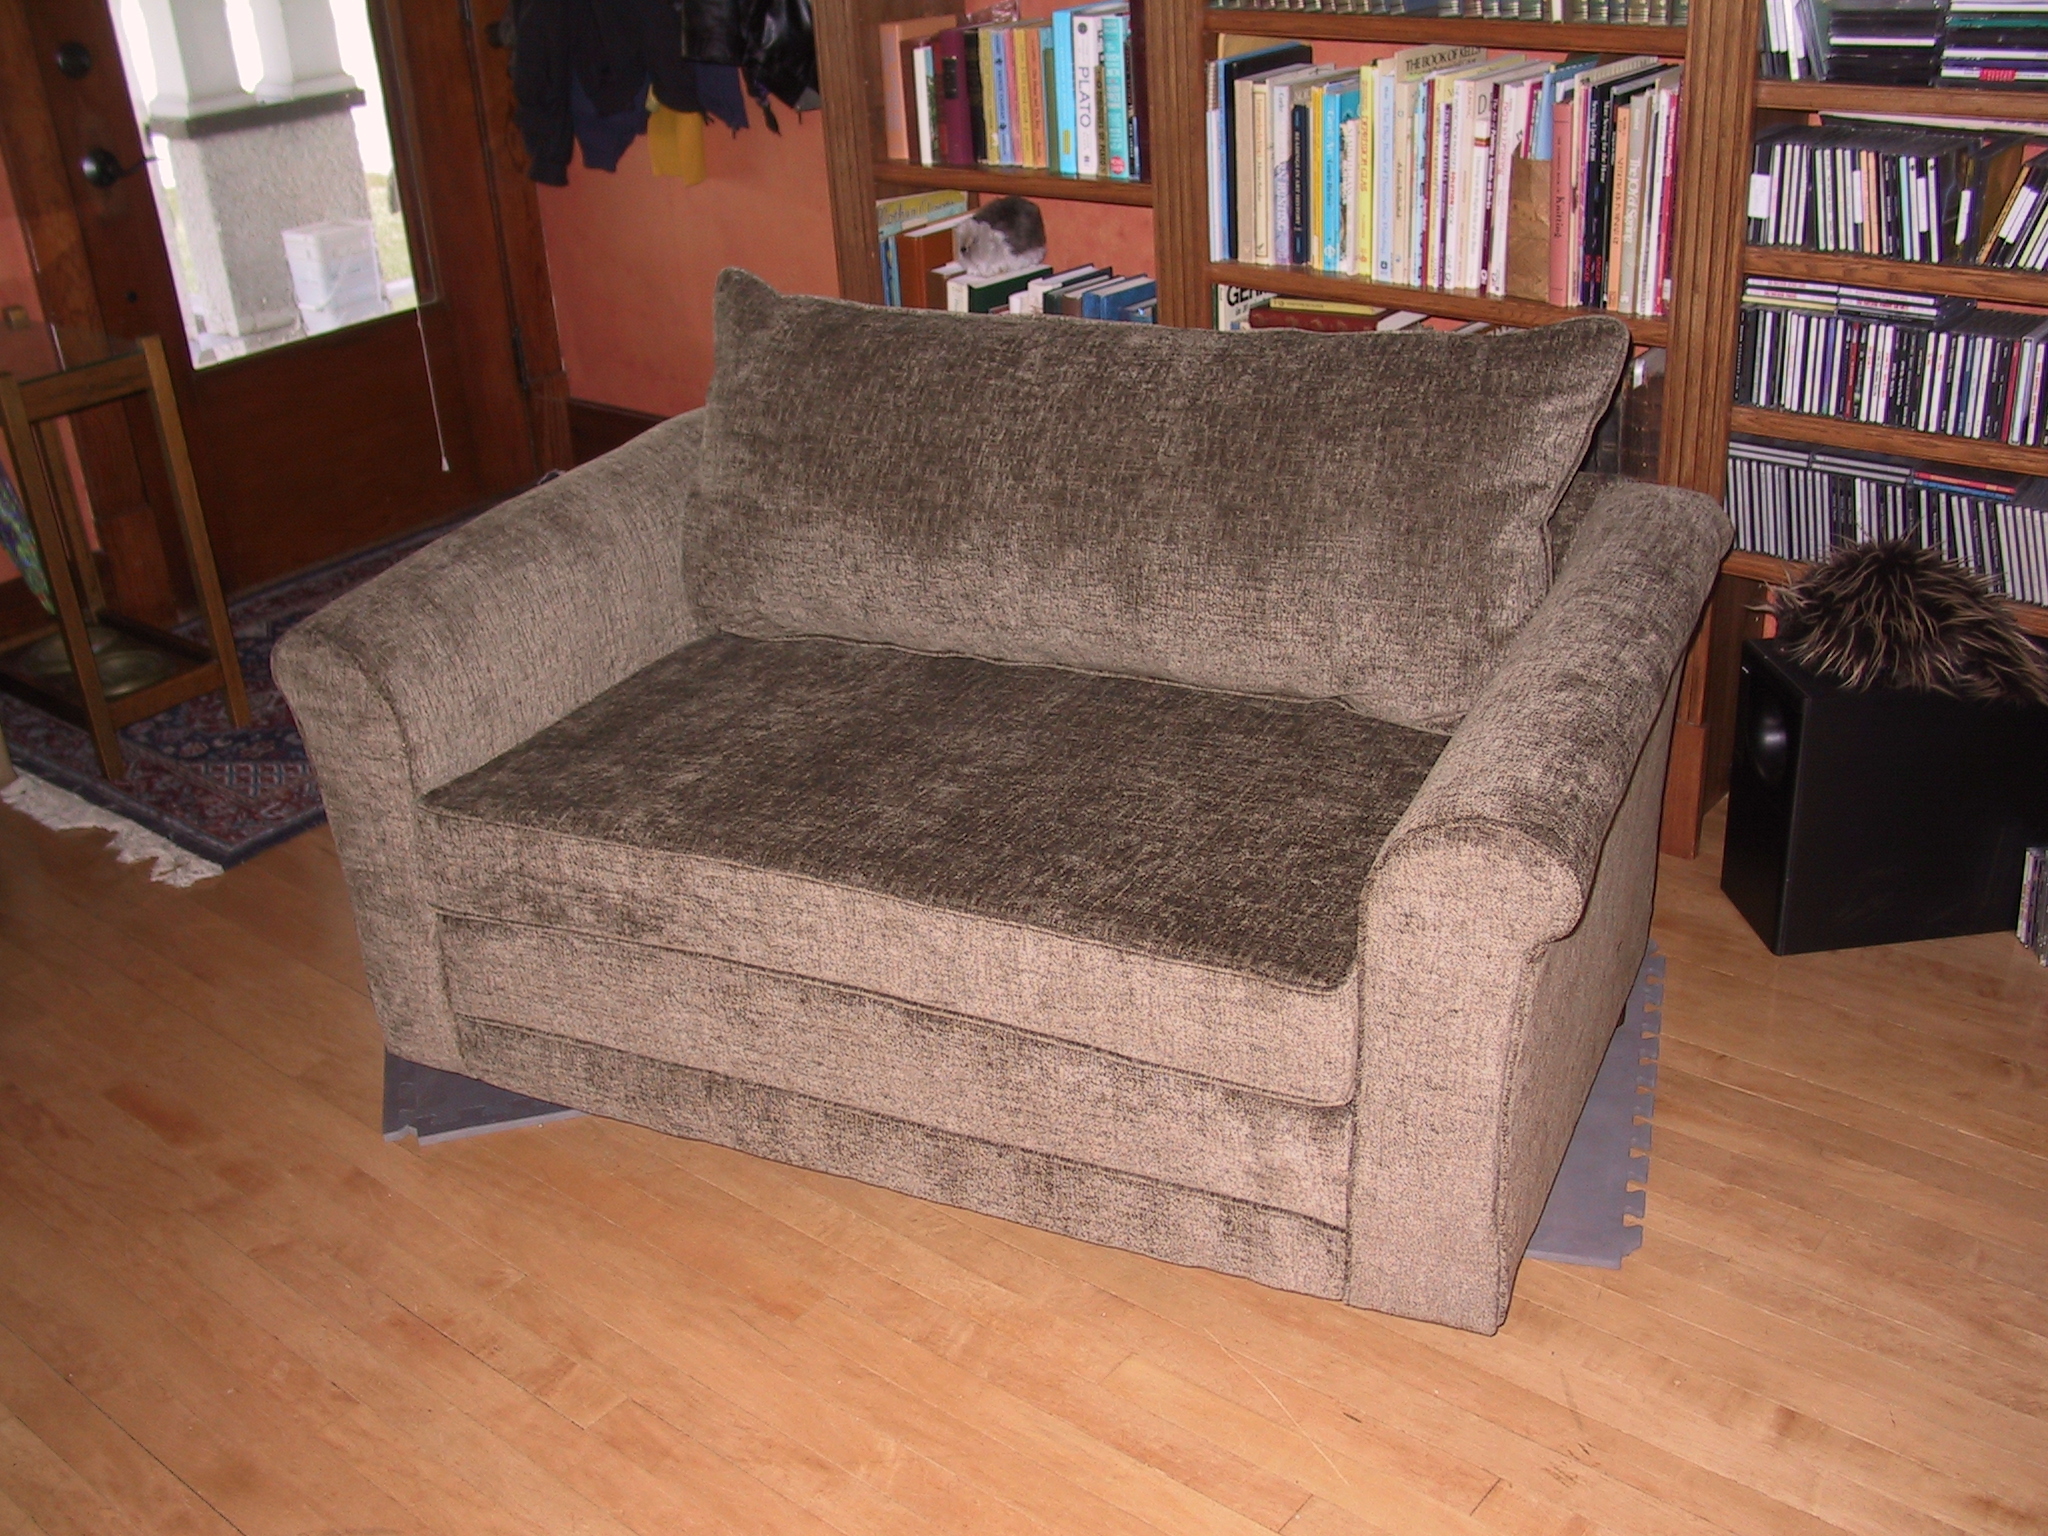 Smooth velvety fabric gives this loveseat a striking new look